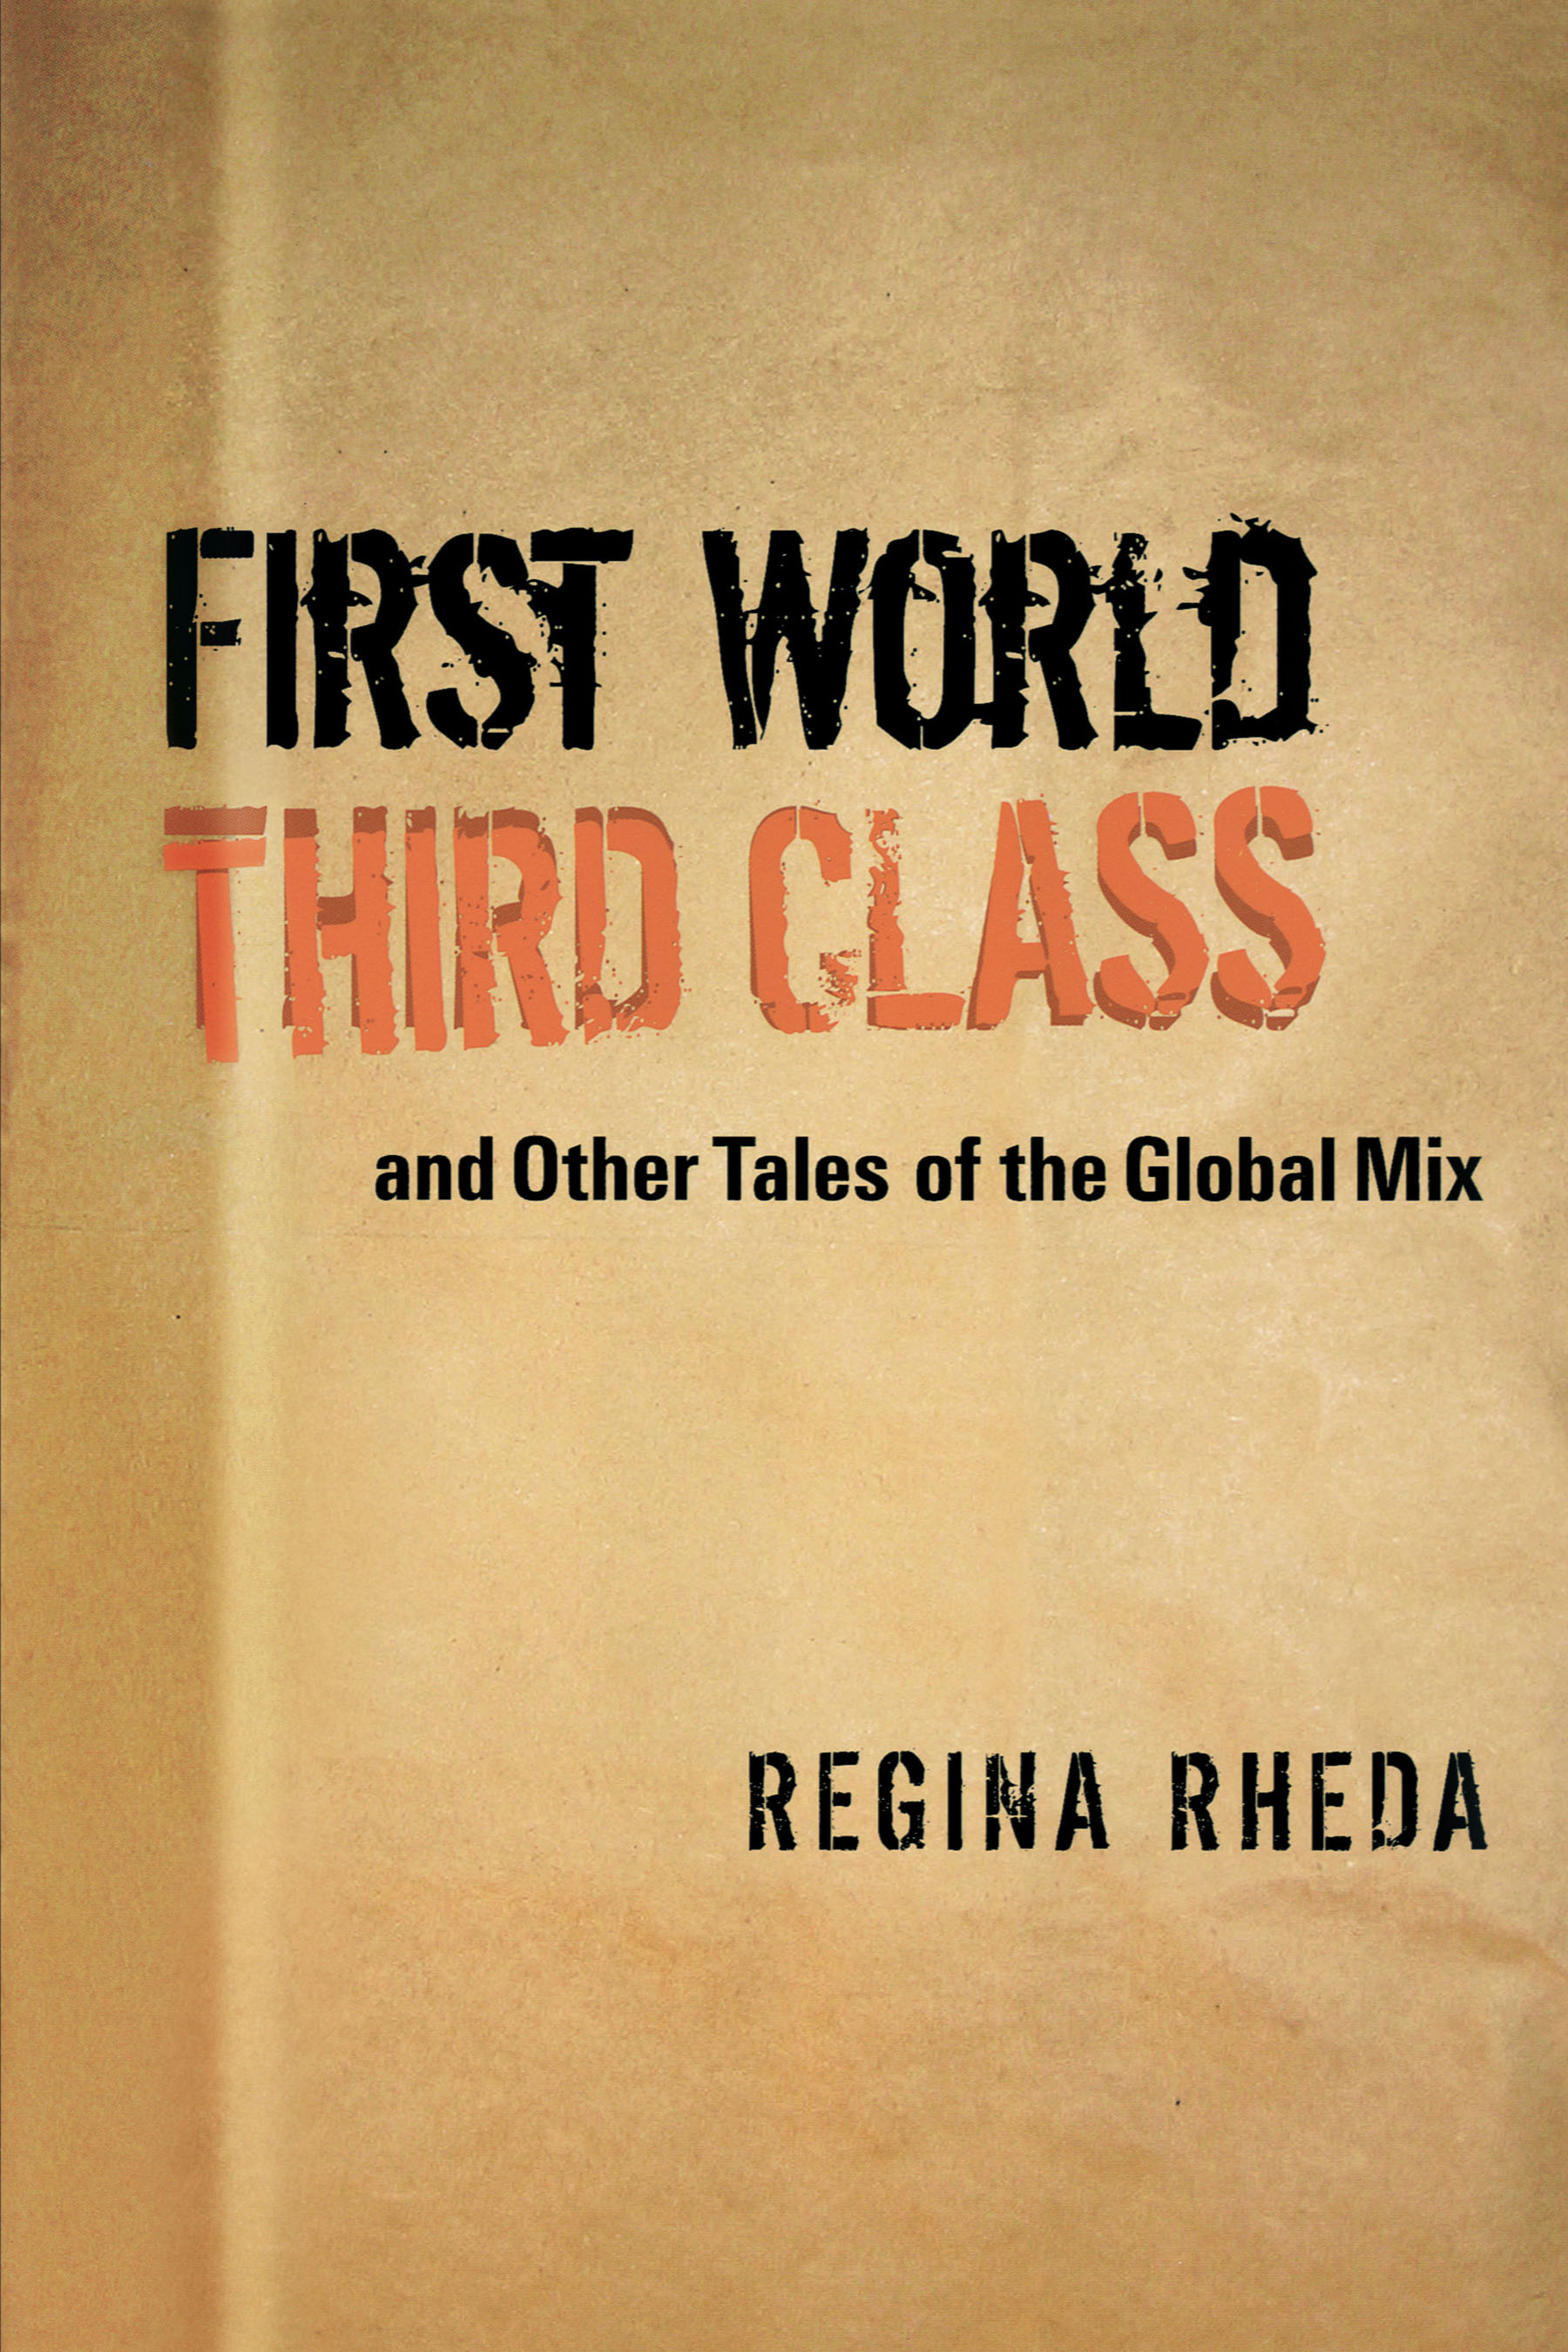 Charles A. Perrone, David  Coles, Introduction by Christopher Dunn, Regina Rheda, REYoung  Adria Frizzi - First World Third Class and Other Tales of the Global Mix